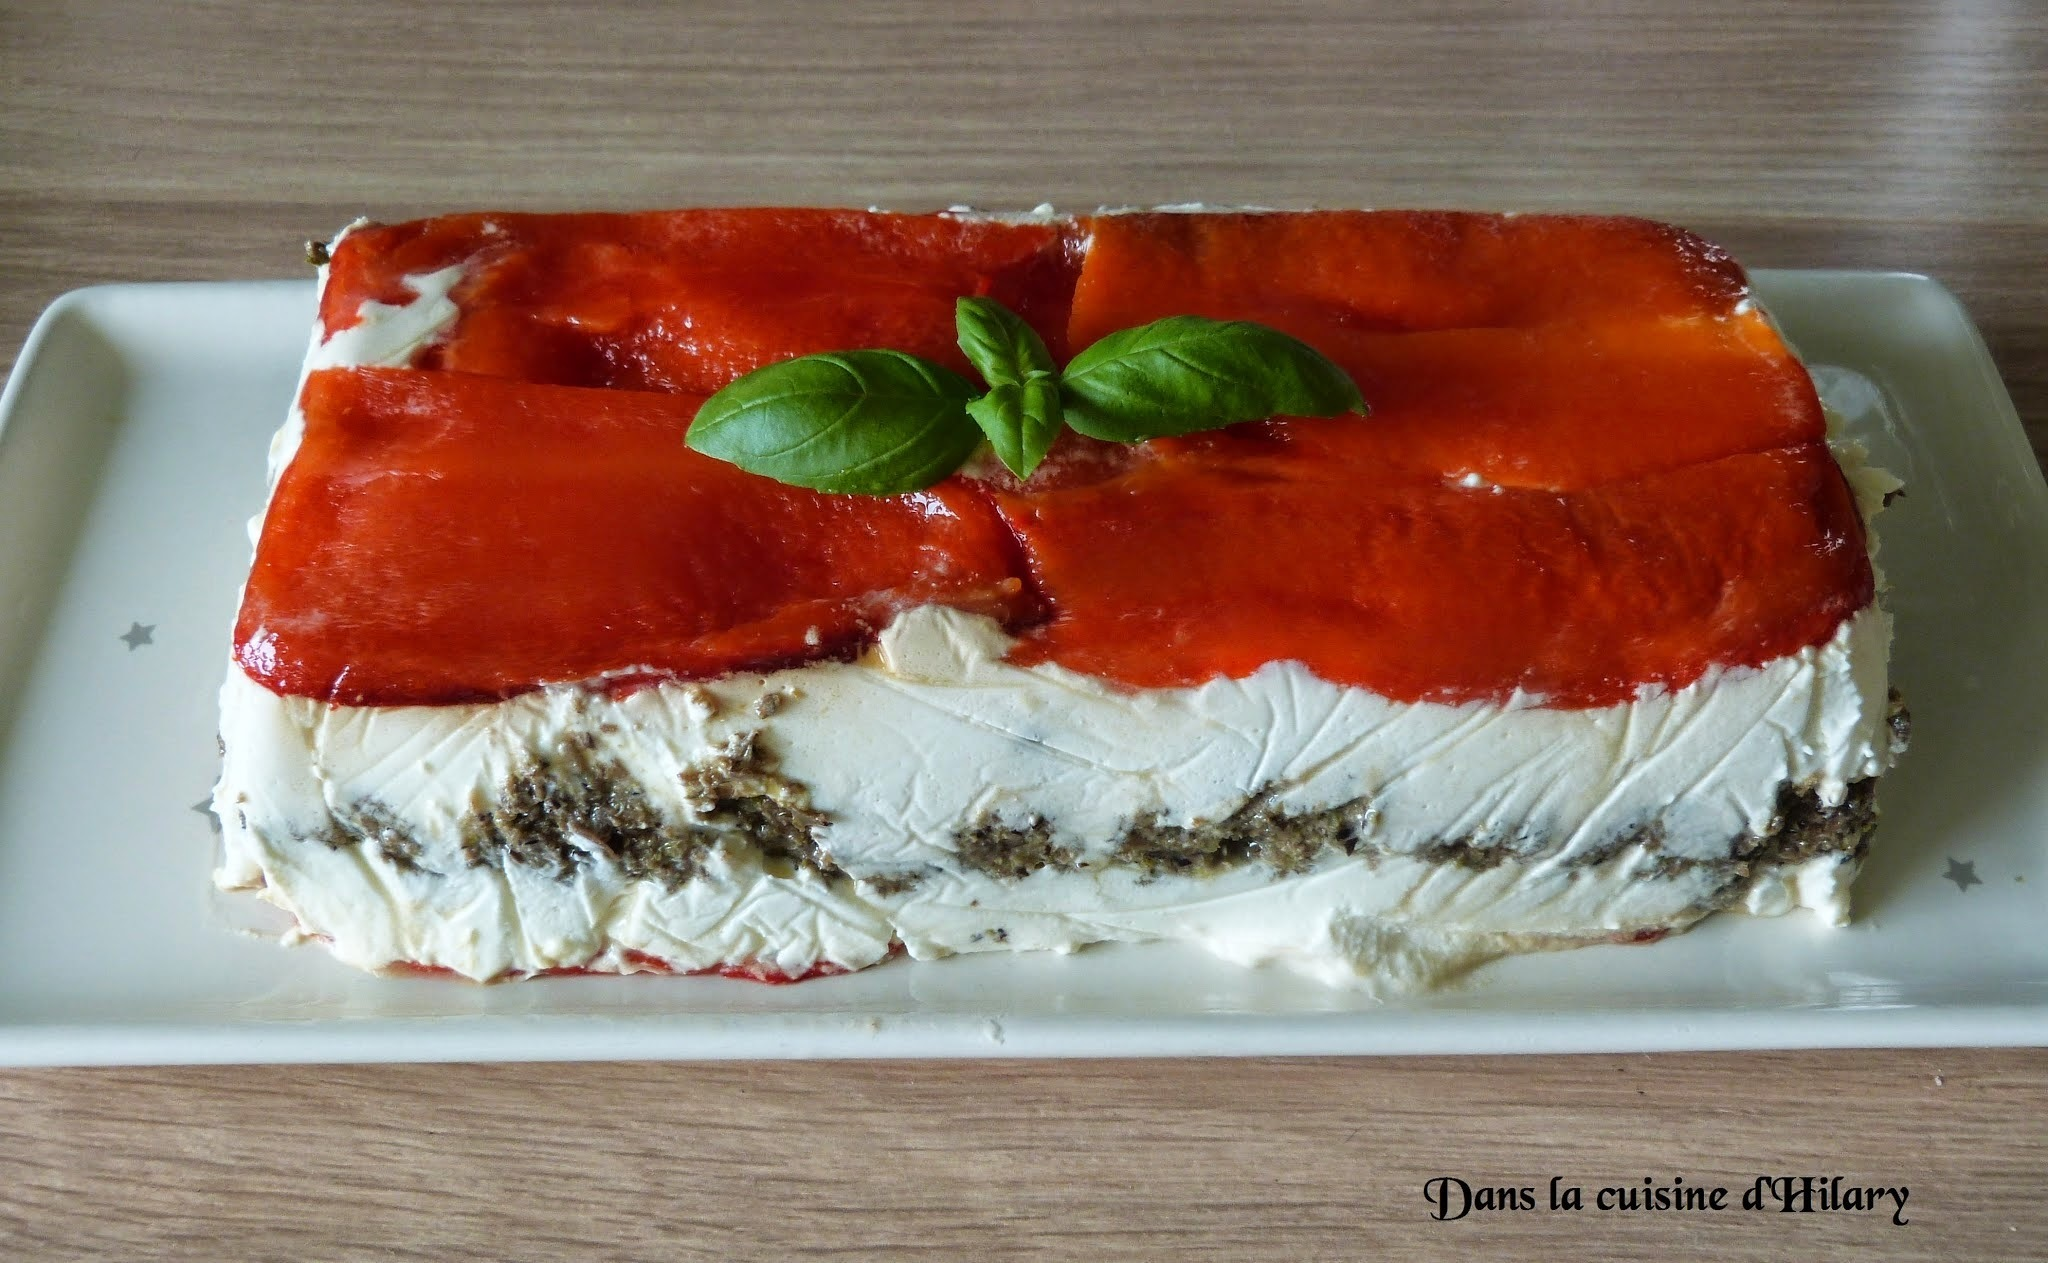 Terrine de fromage de chèvre, tapenade et poivrons / Goat cheese, tapenade and red pepper terrine